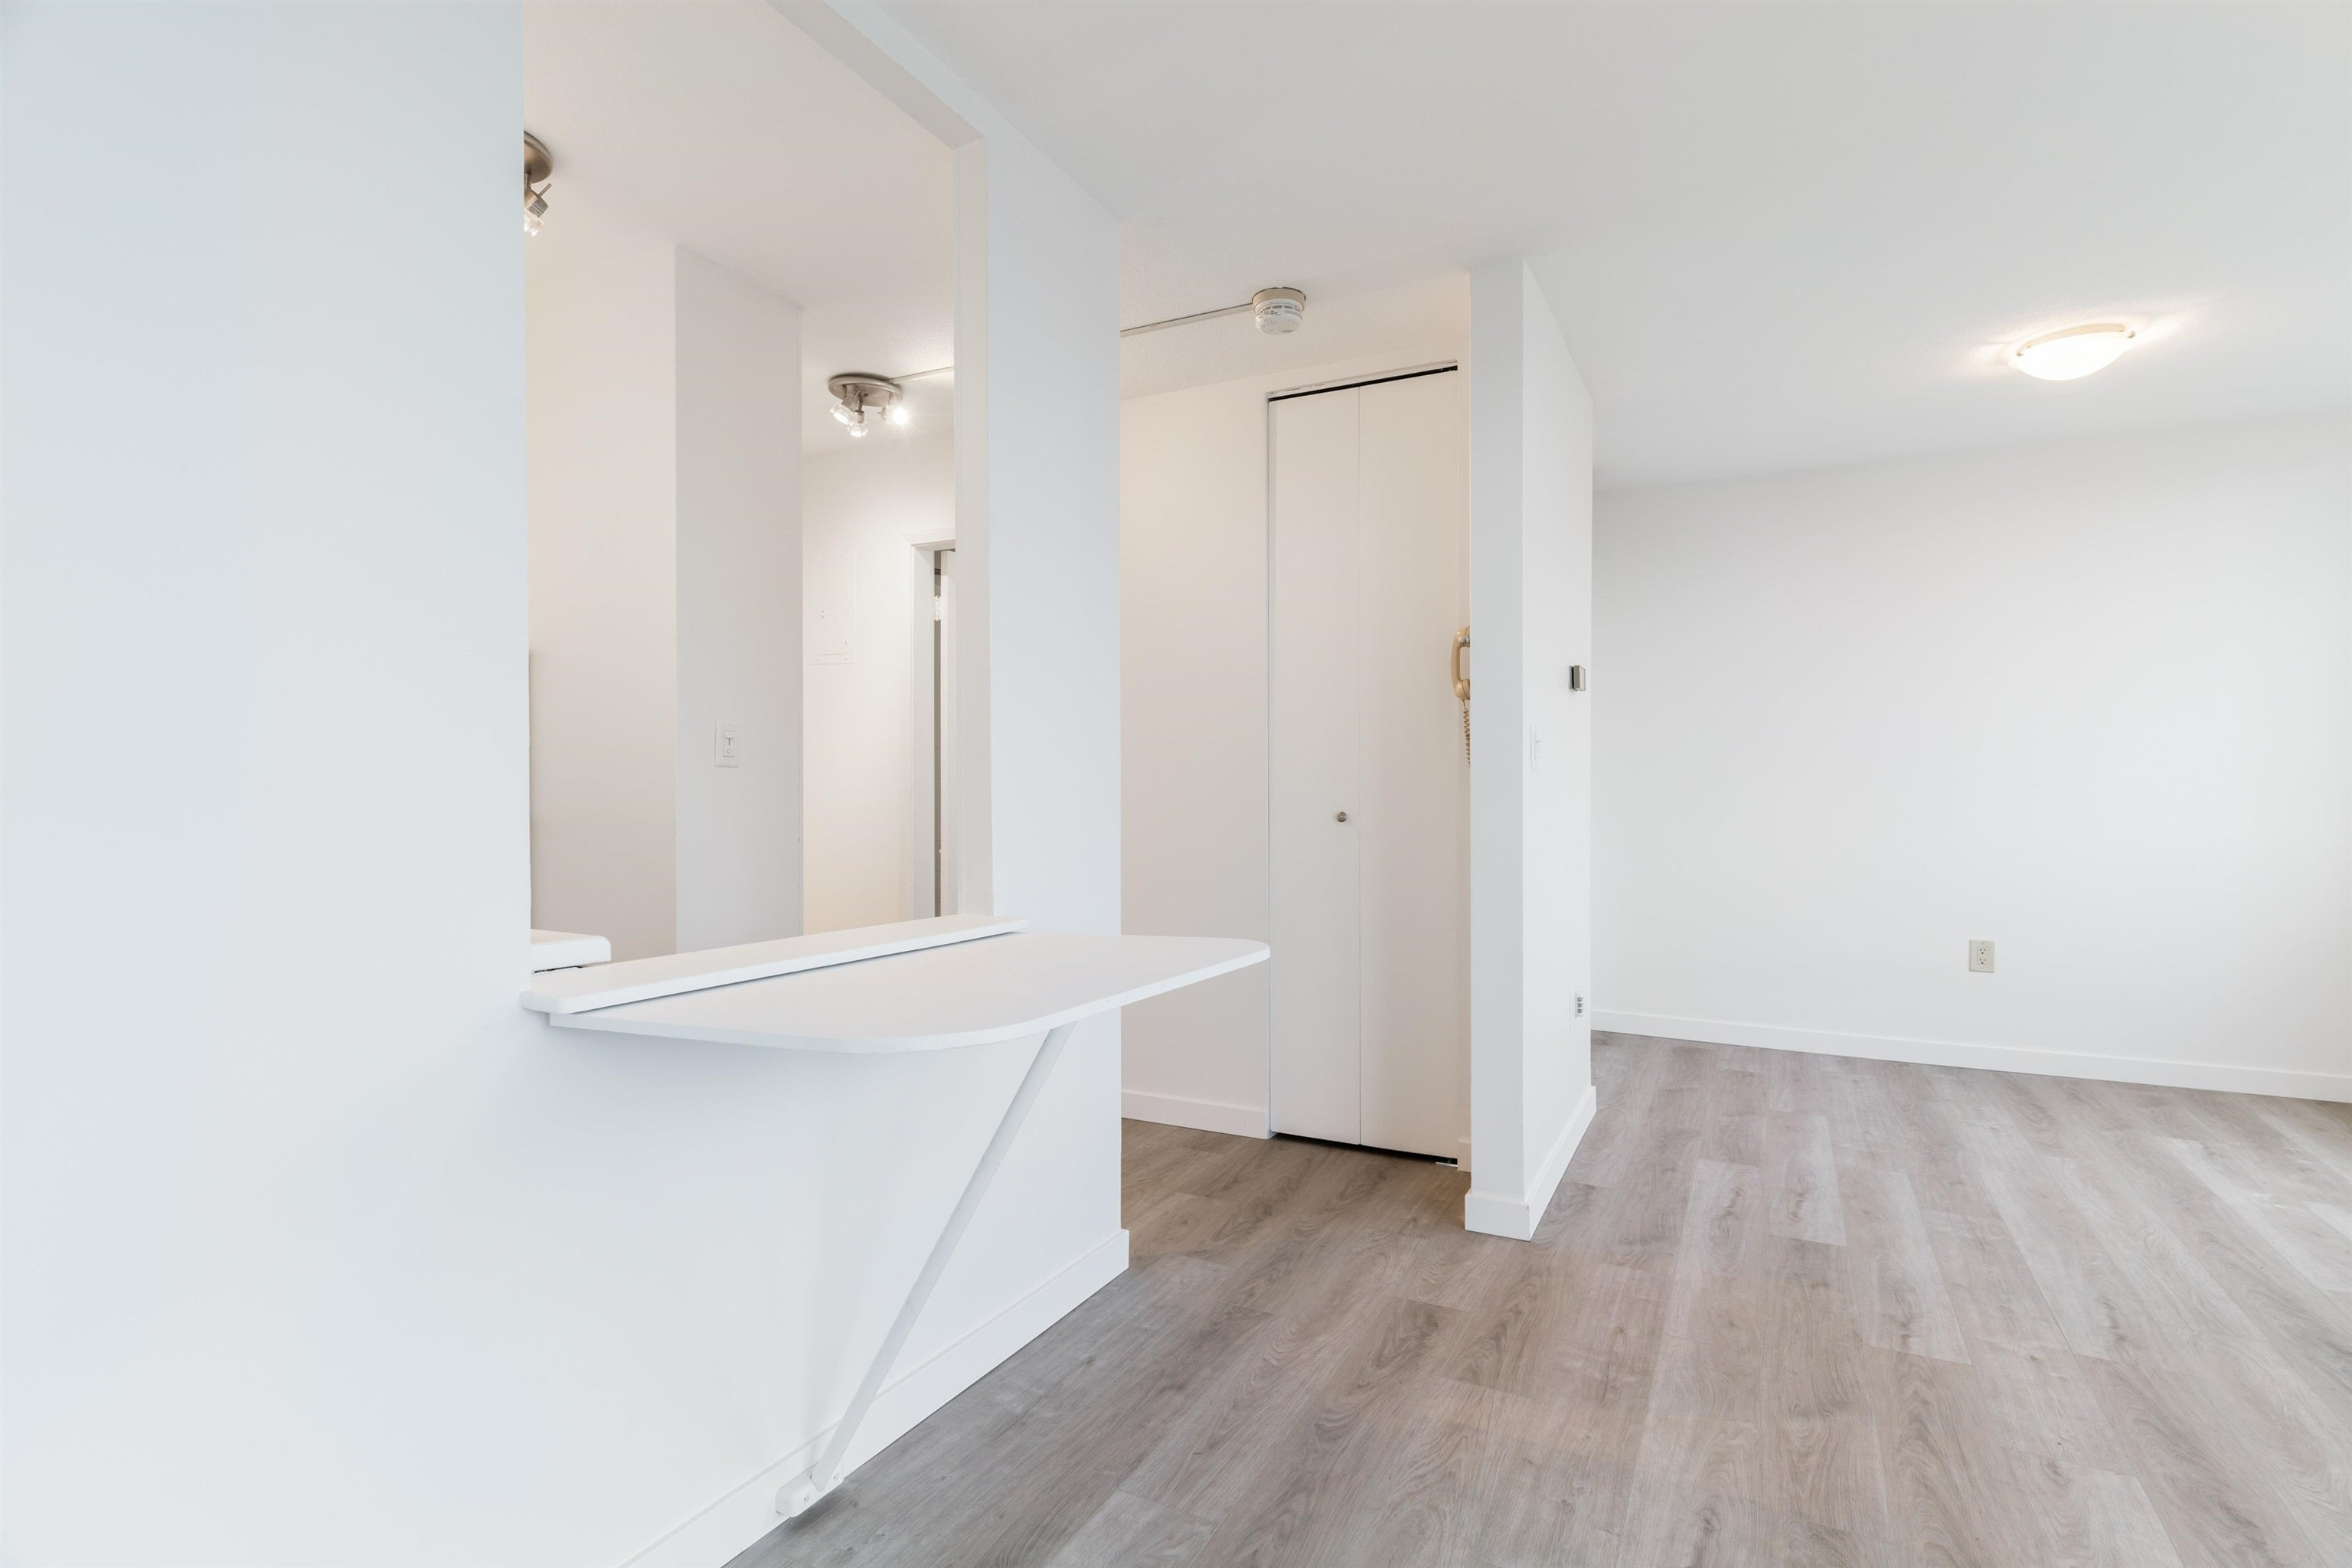 806 1251 CARDERO STREET - West End VW Apartment/Condo for sale, 1 Bedroom (R2625738) - #9